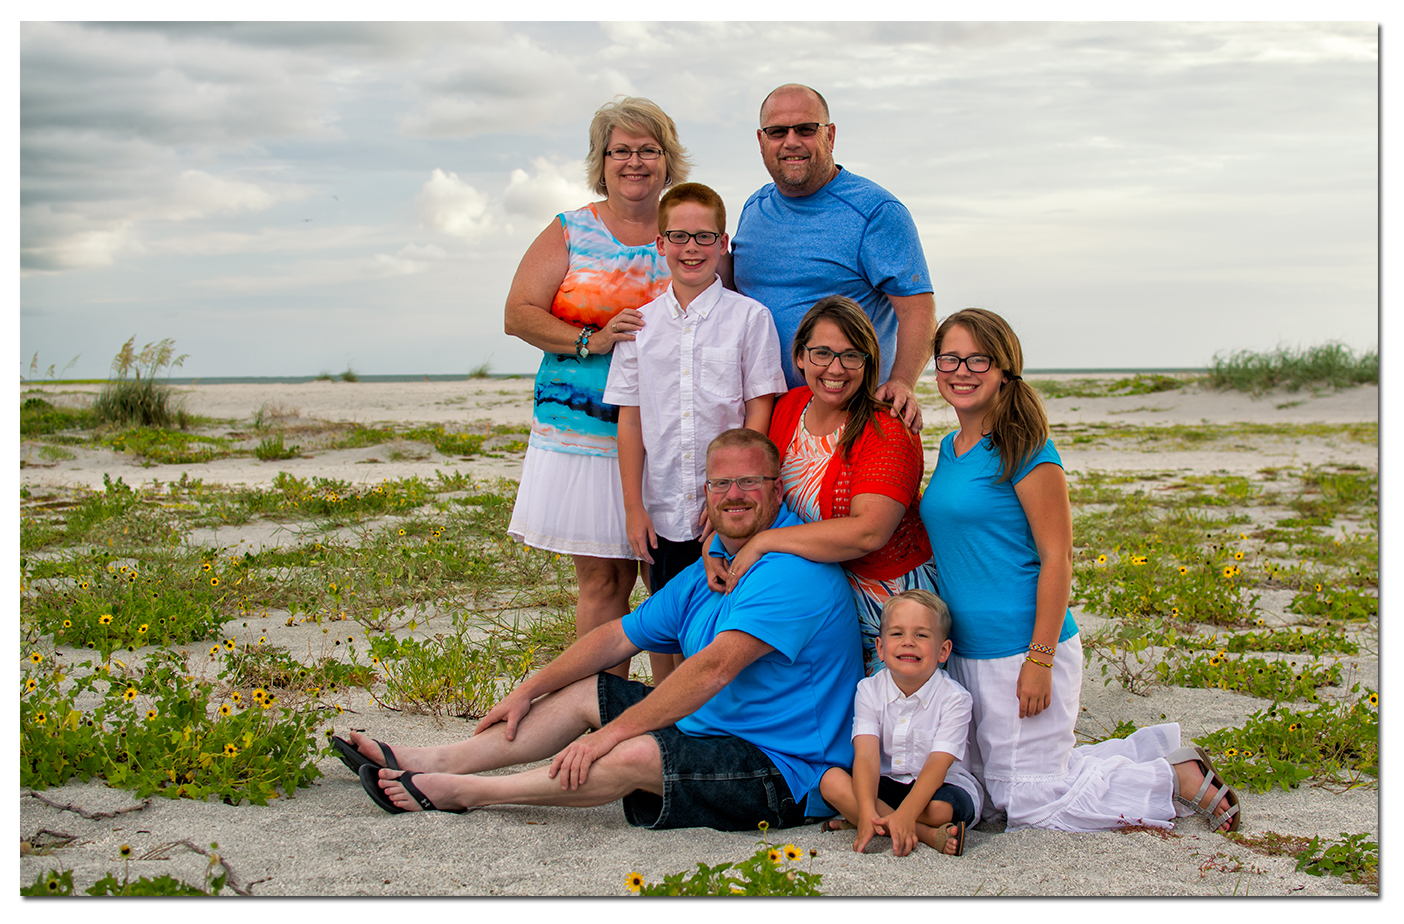 Fun Family Portraits at Clearwater Beach